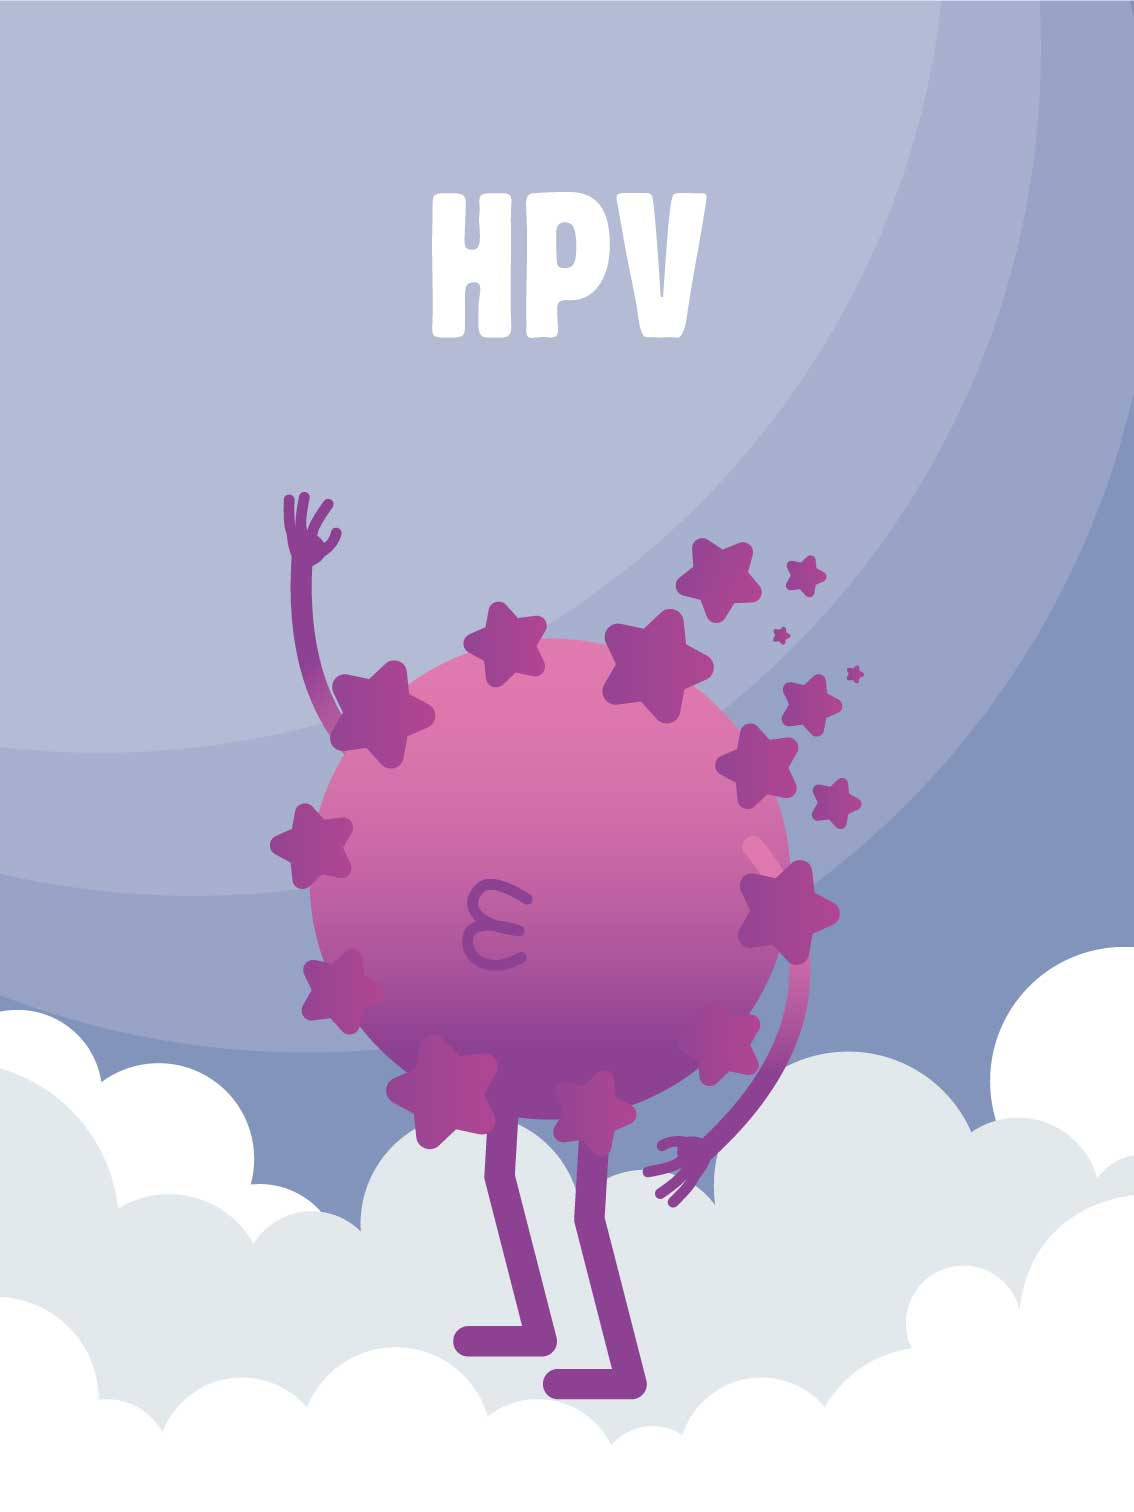 Papillomavirus homme mst. Hpv treatment ncbi